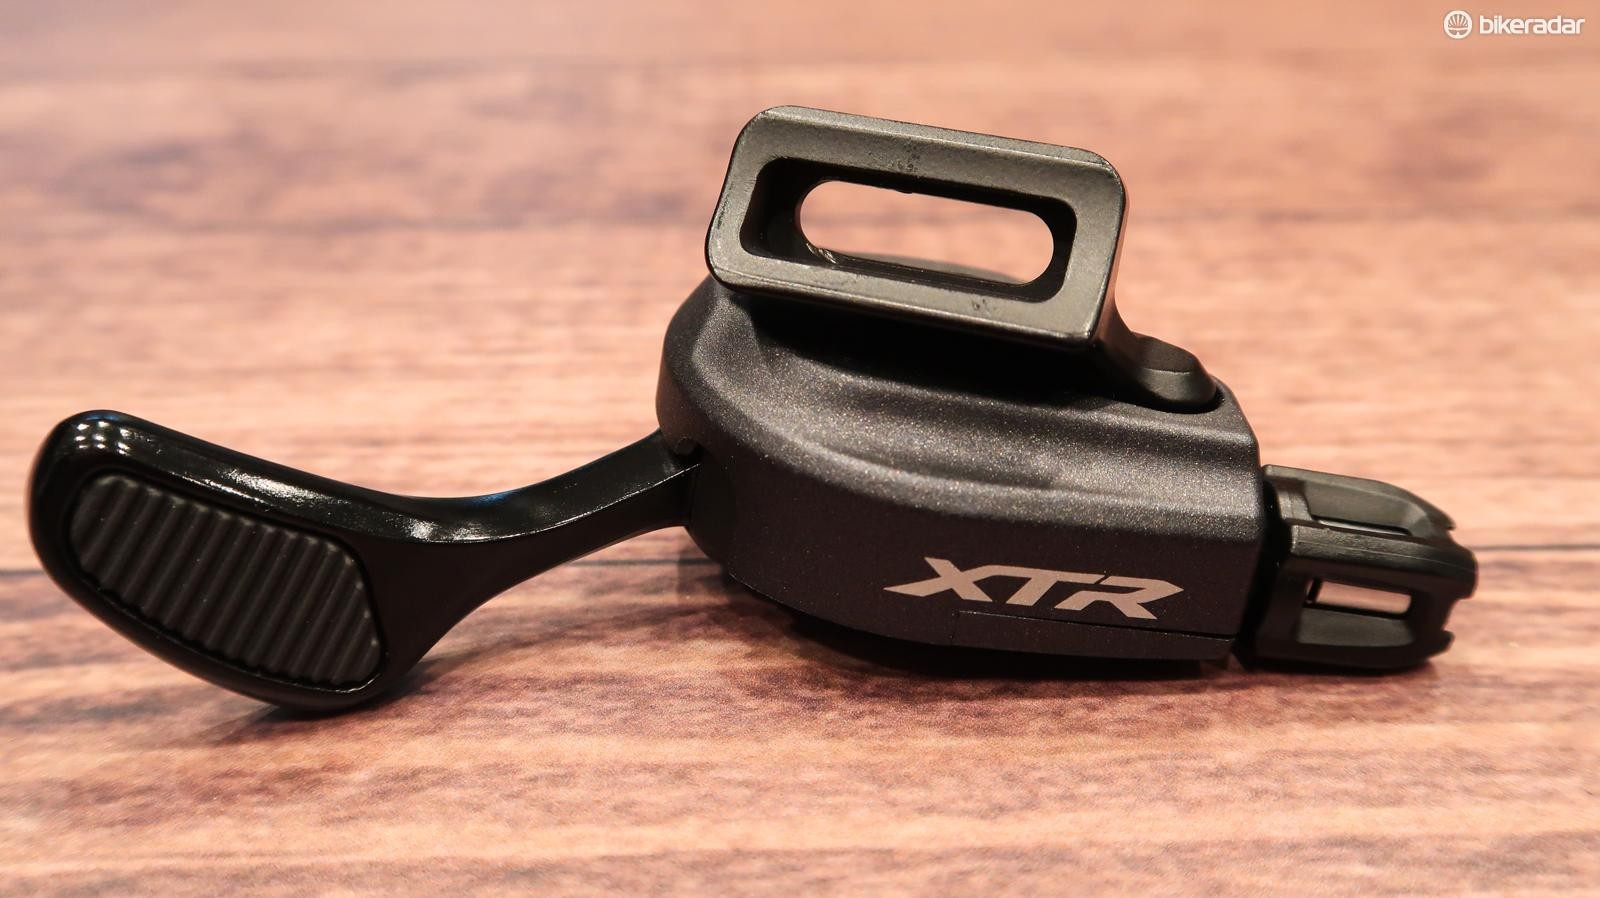 While it looks like a dropper lever, this is actually the very minimalist shifter for the front derailleur